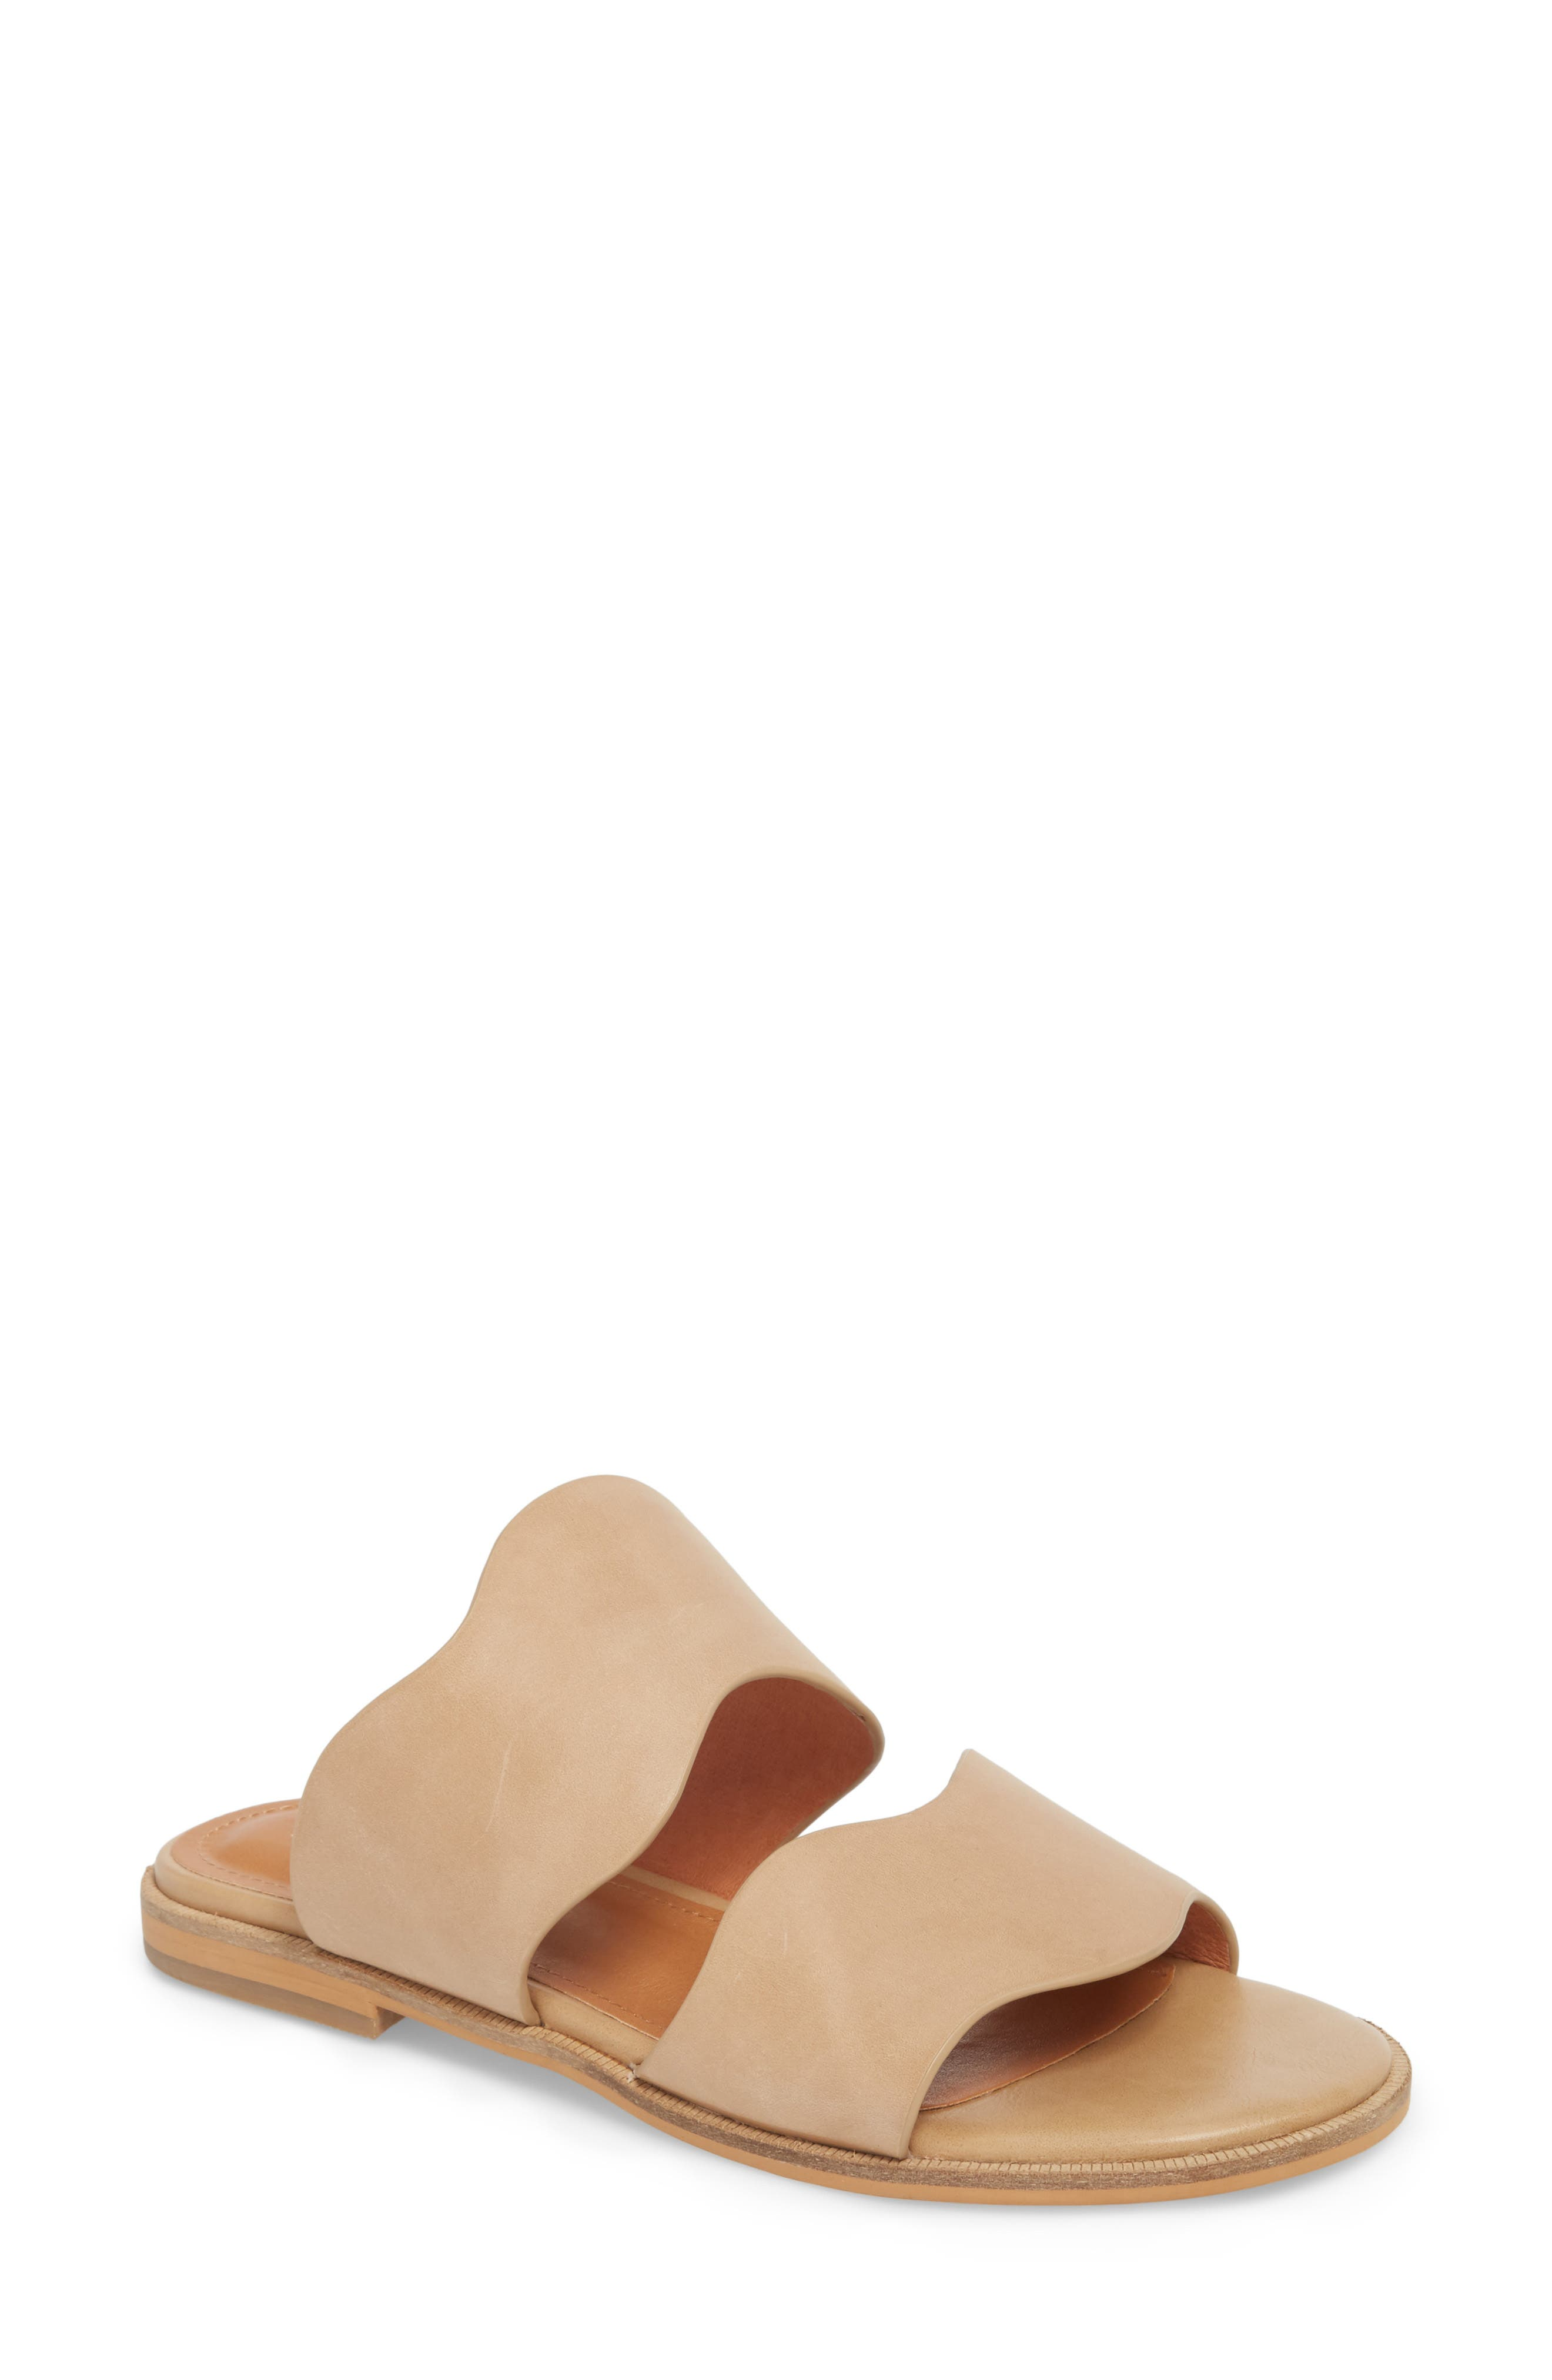 Thermos Scalloped Slide Sandal,                             Main thumbnail 1, color,                             Natural Leather